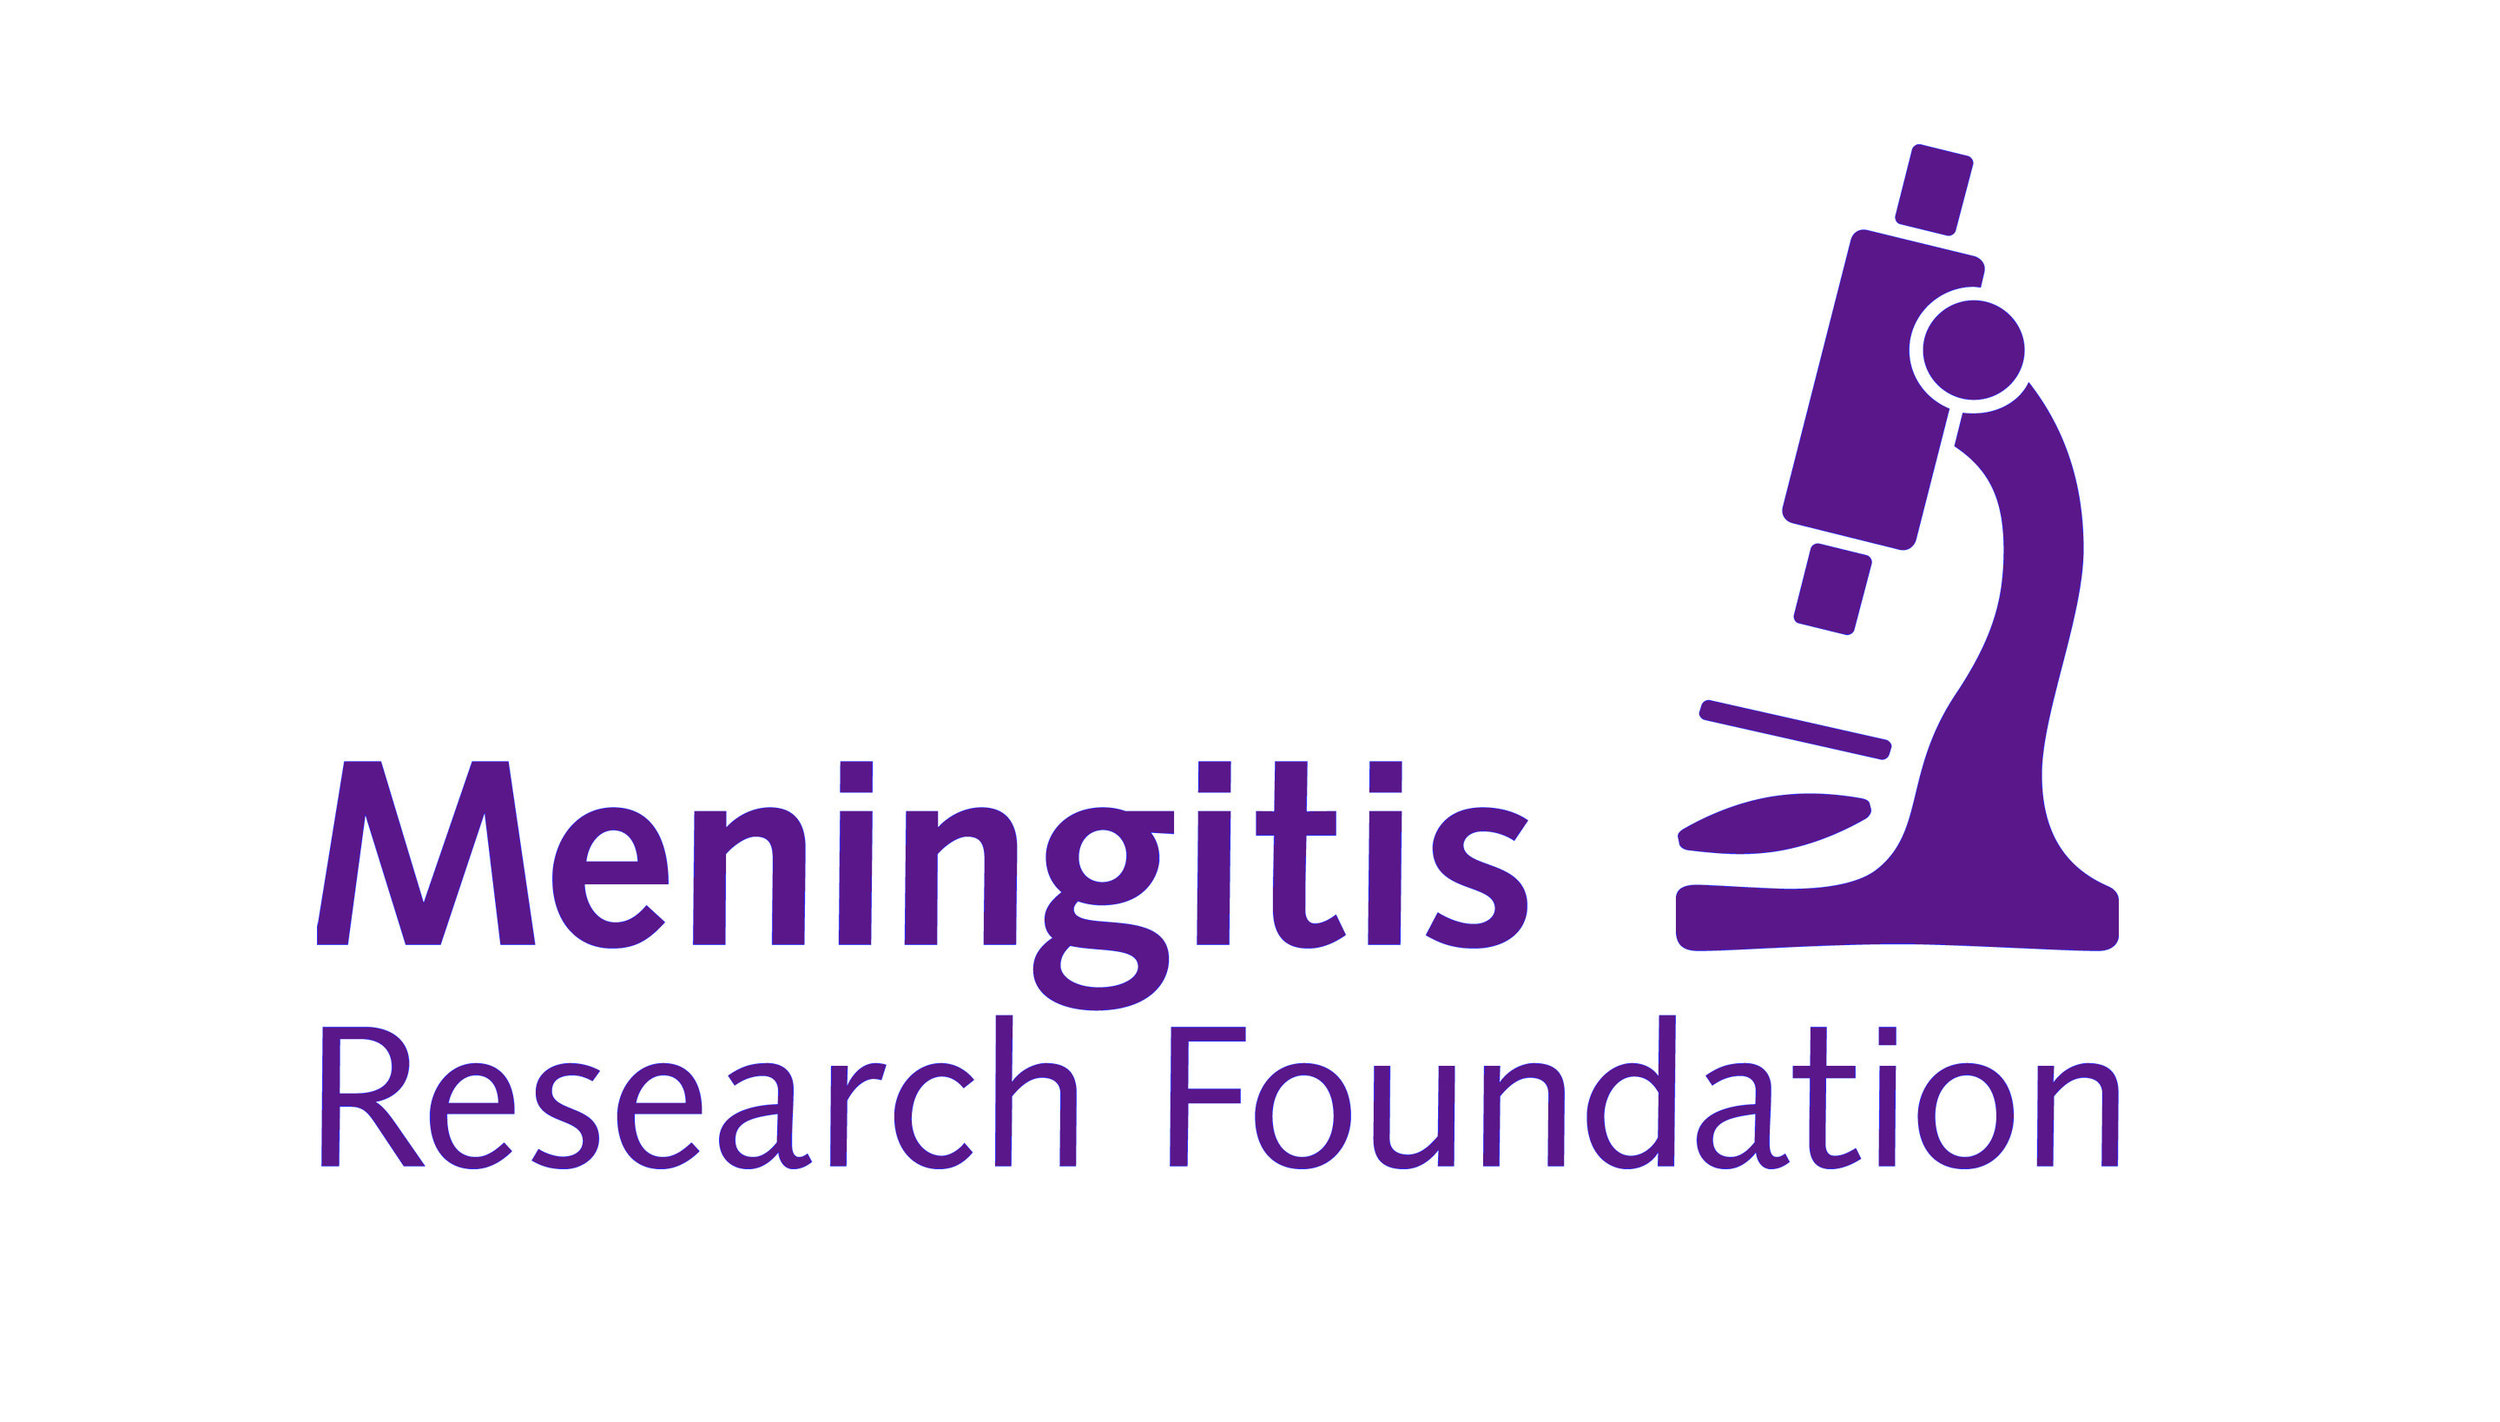 Copy of Copy of Copy of Copy of Meningitis Research Foundation